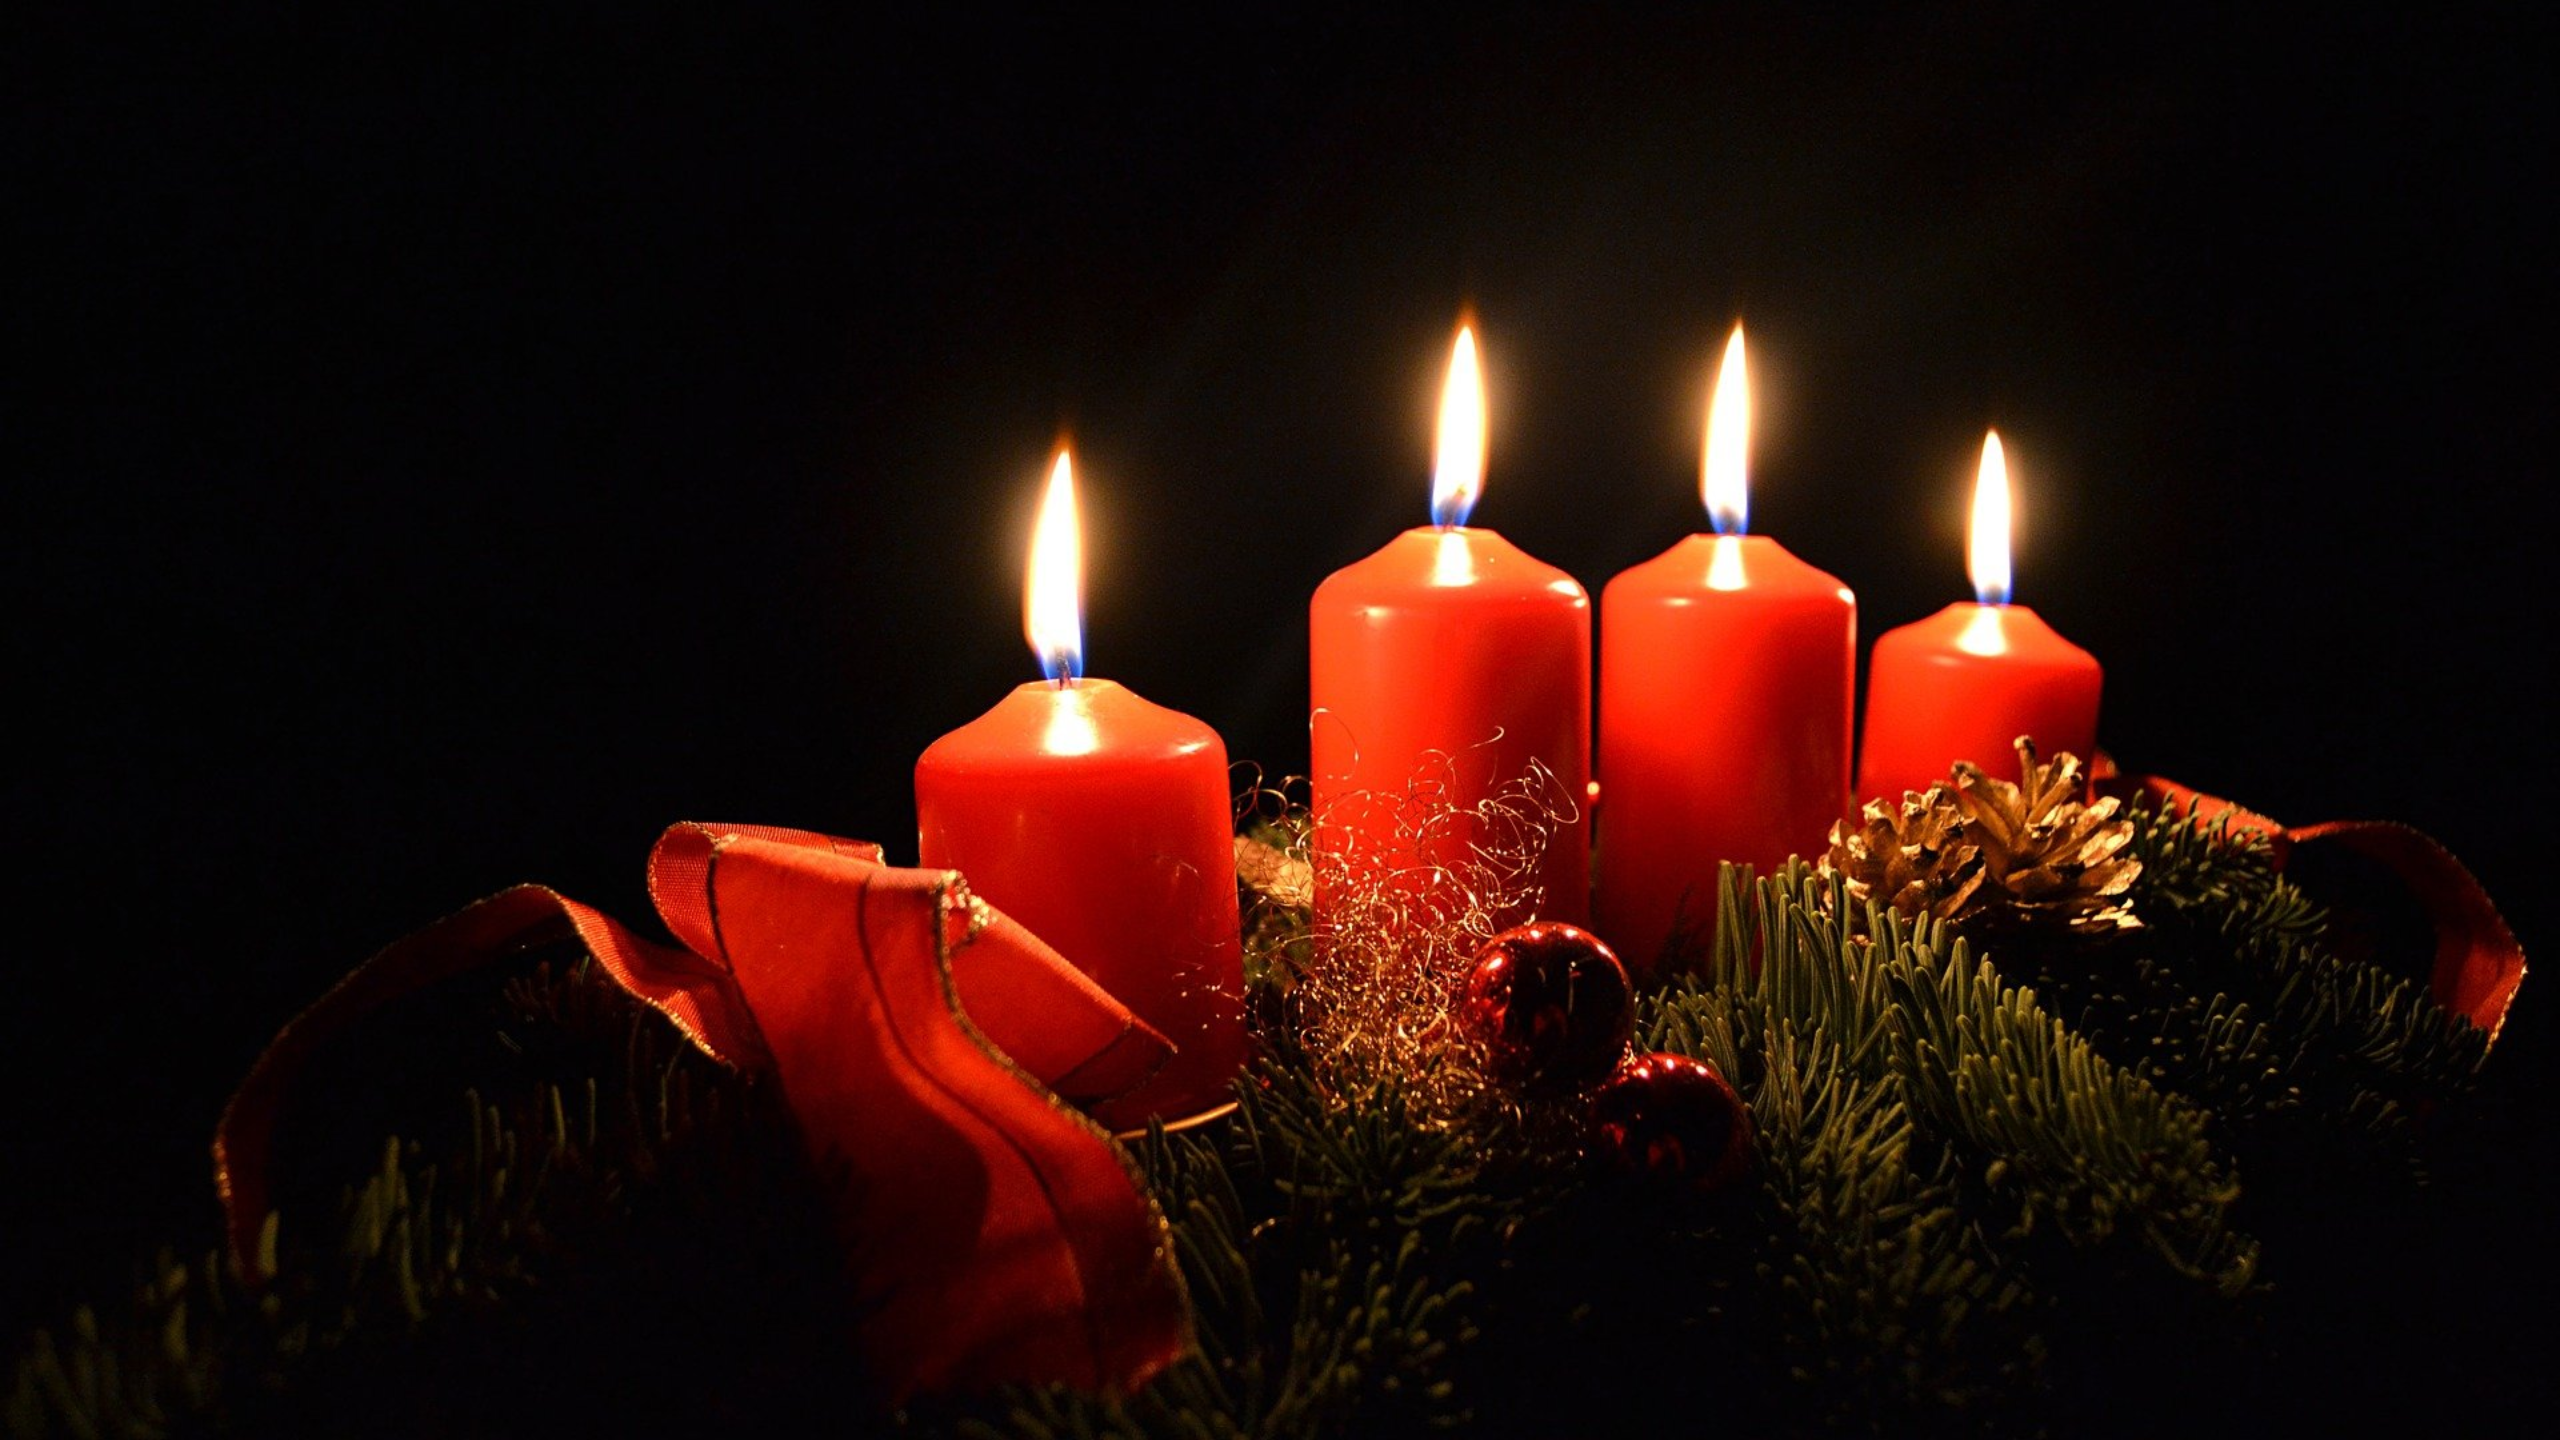 For You This Advent